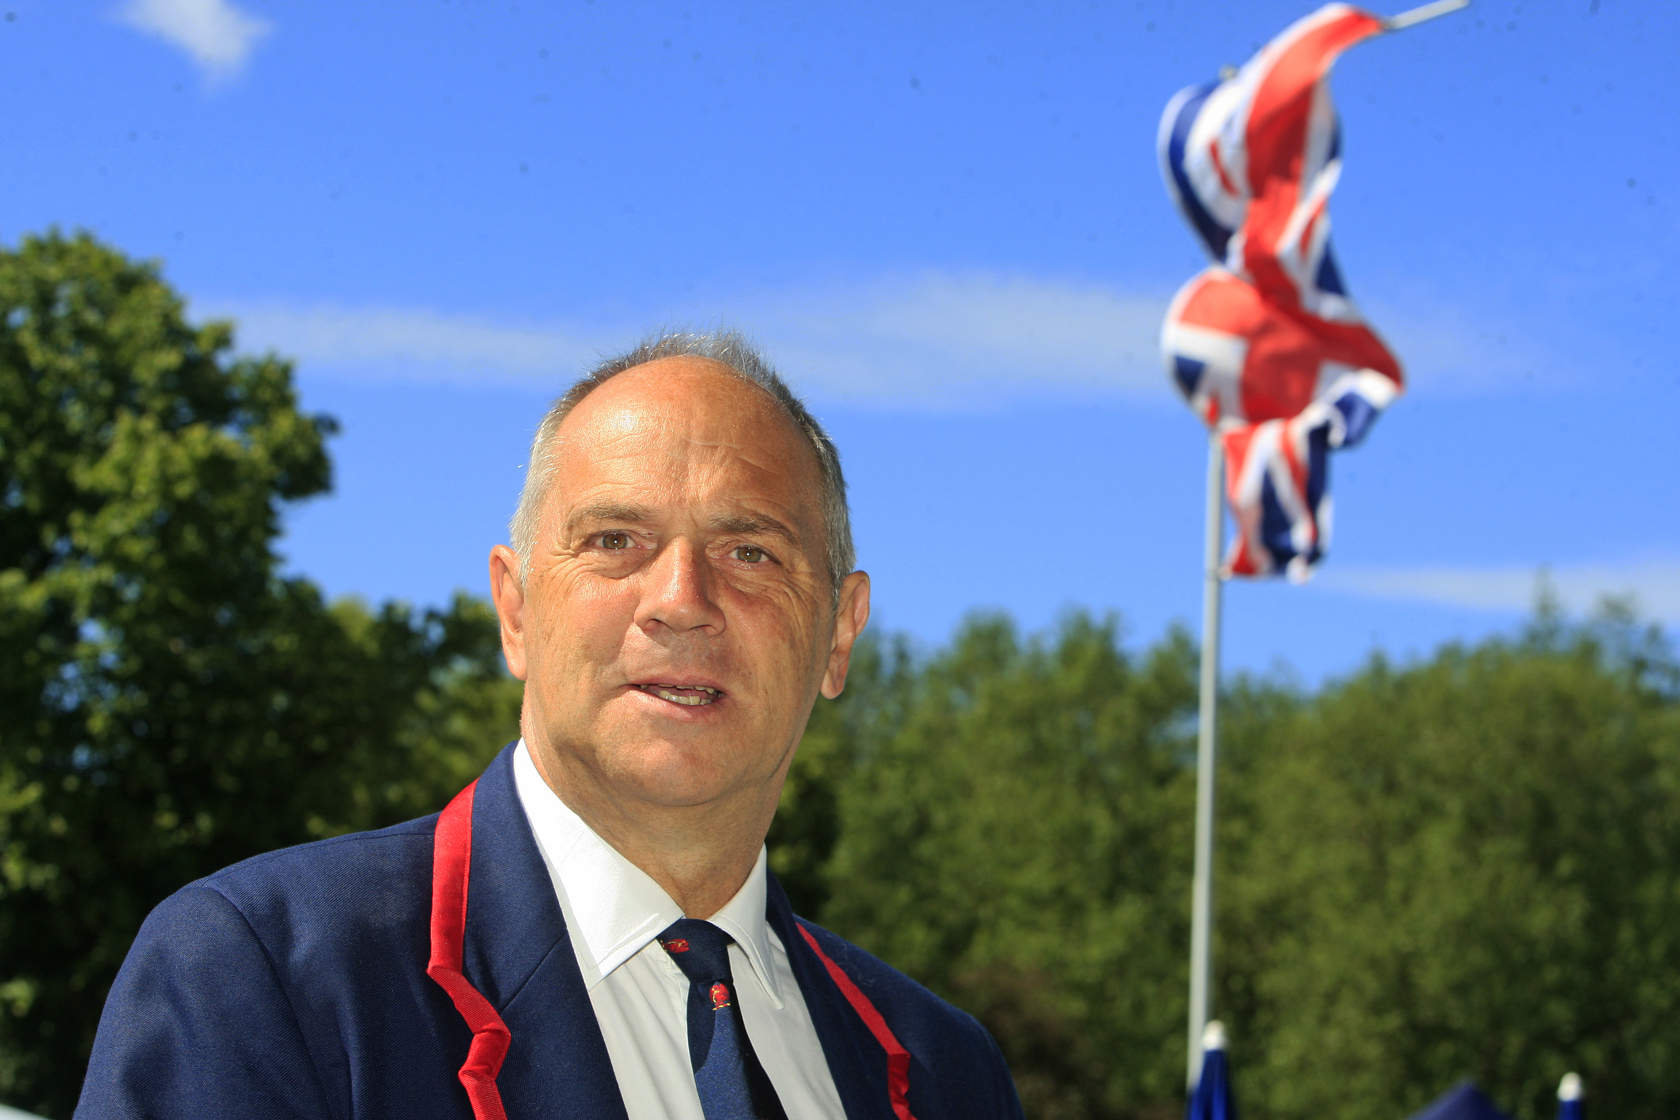 Rowing legend Sir Steve Redgrave to kick off town regatta once again